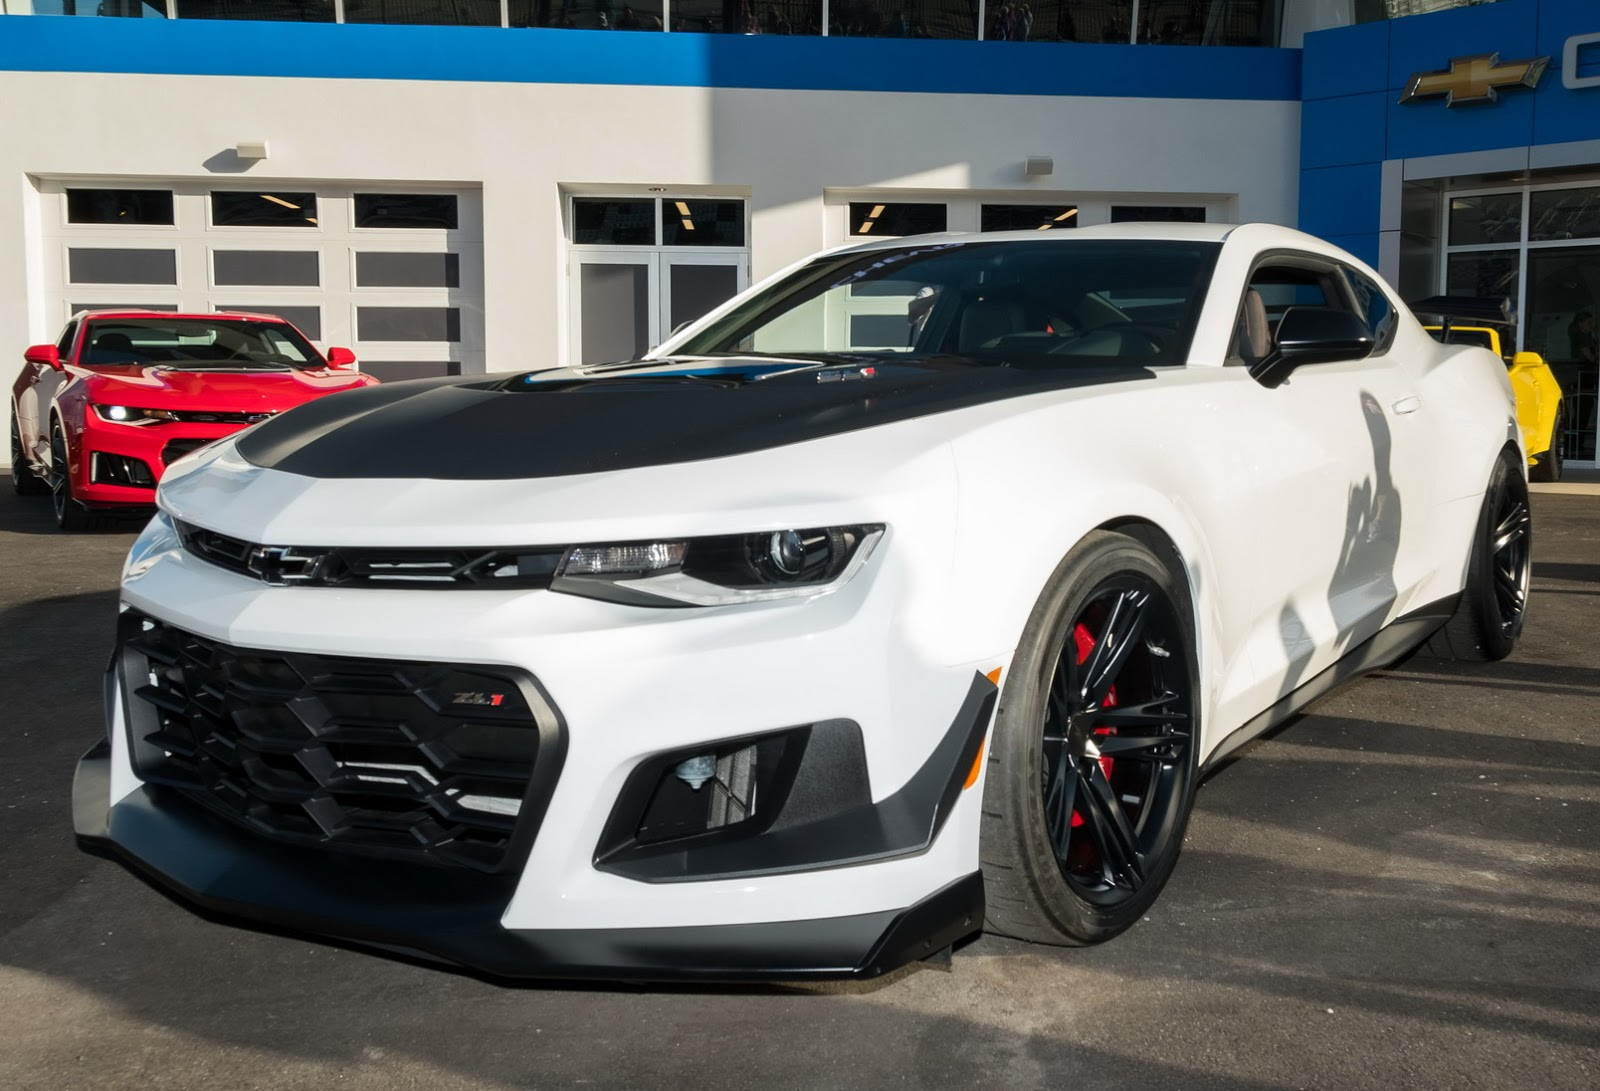 2018 Chevrolet Camaro Zl1 1le Revealed Is A Race Car With